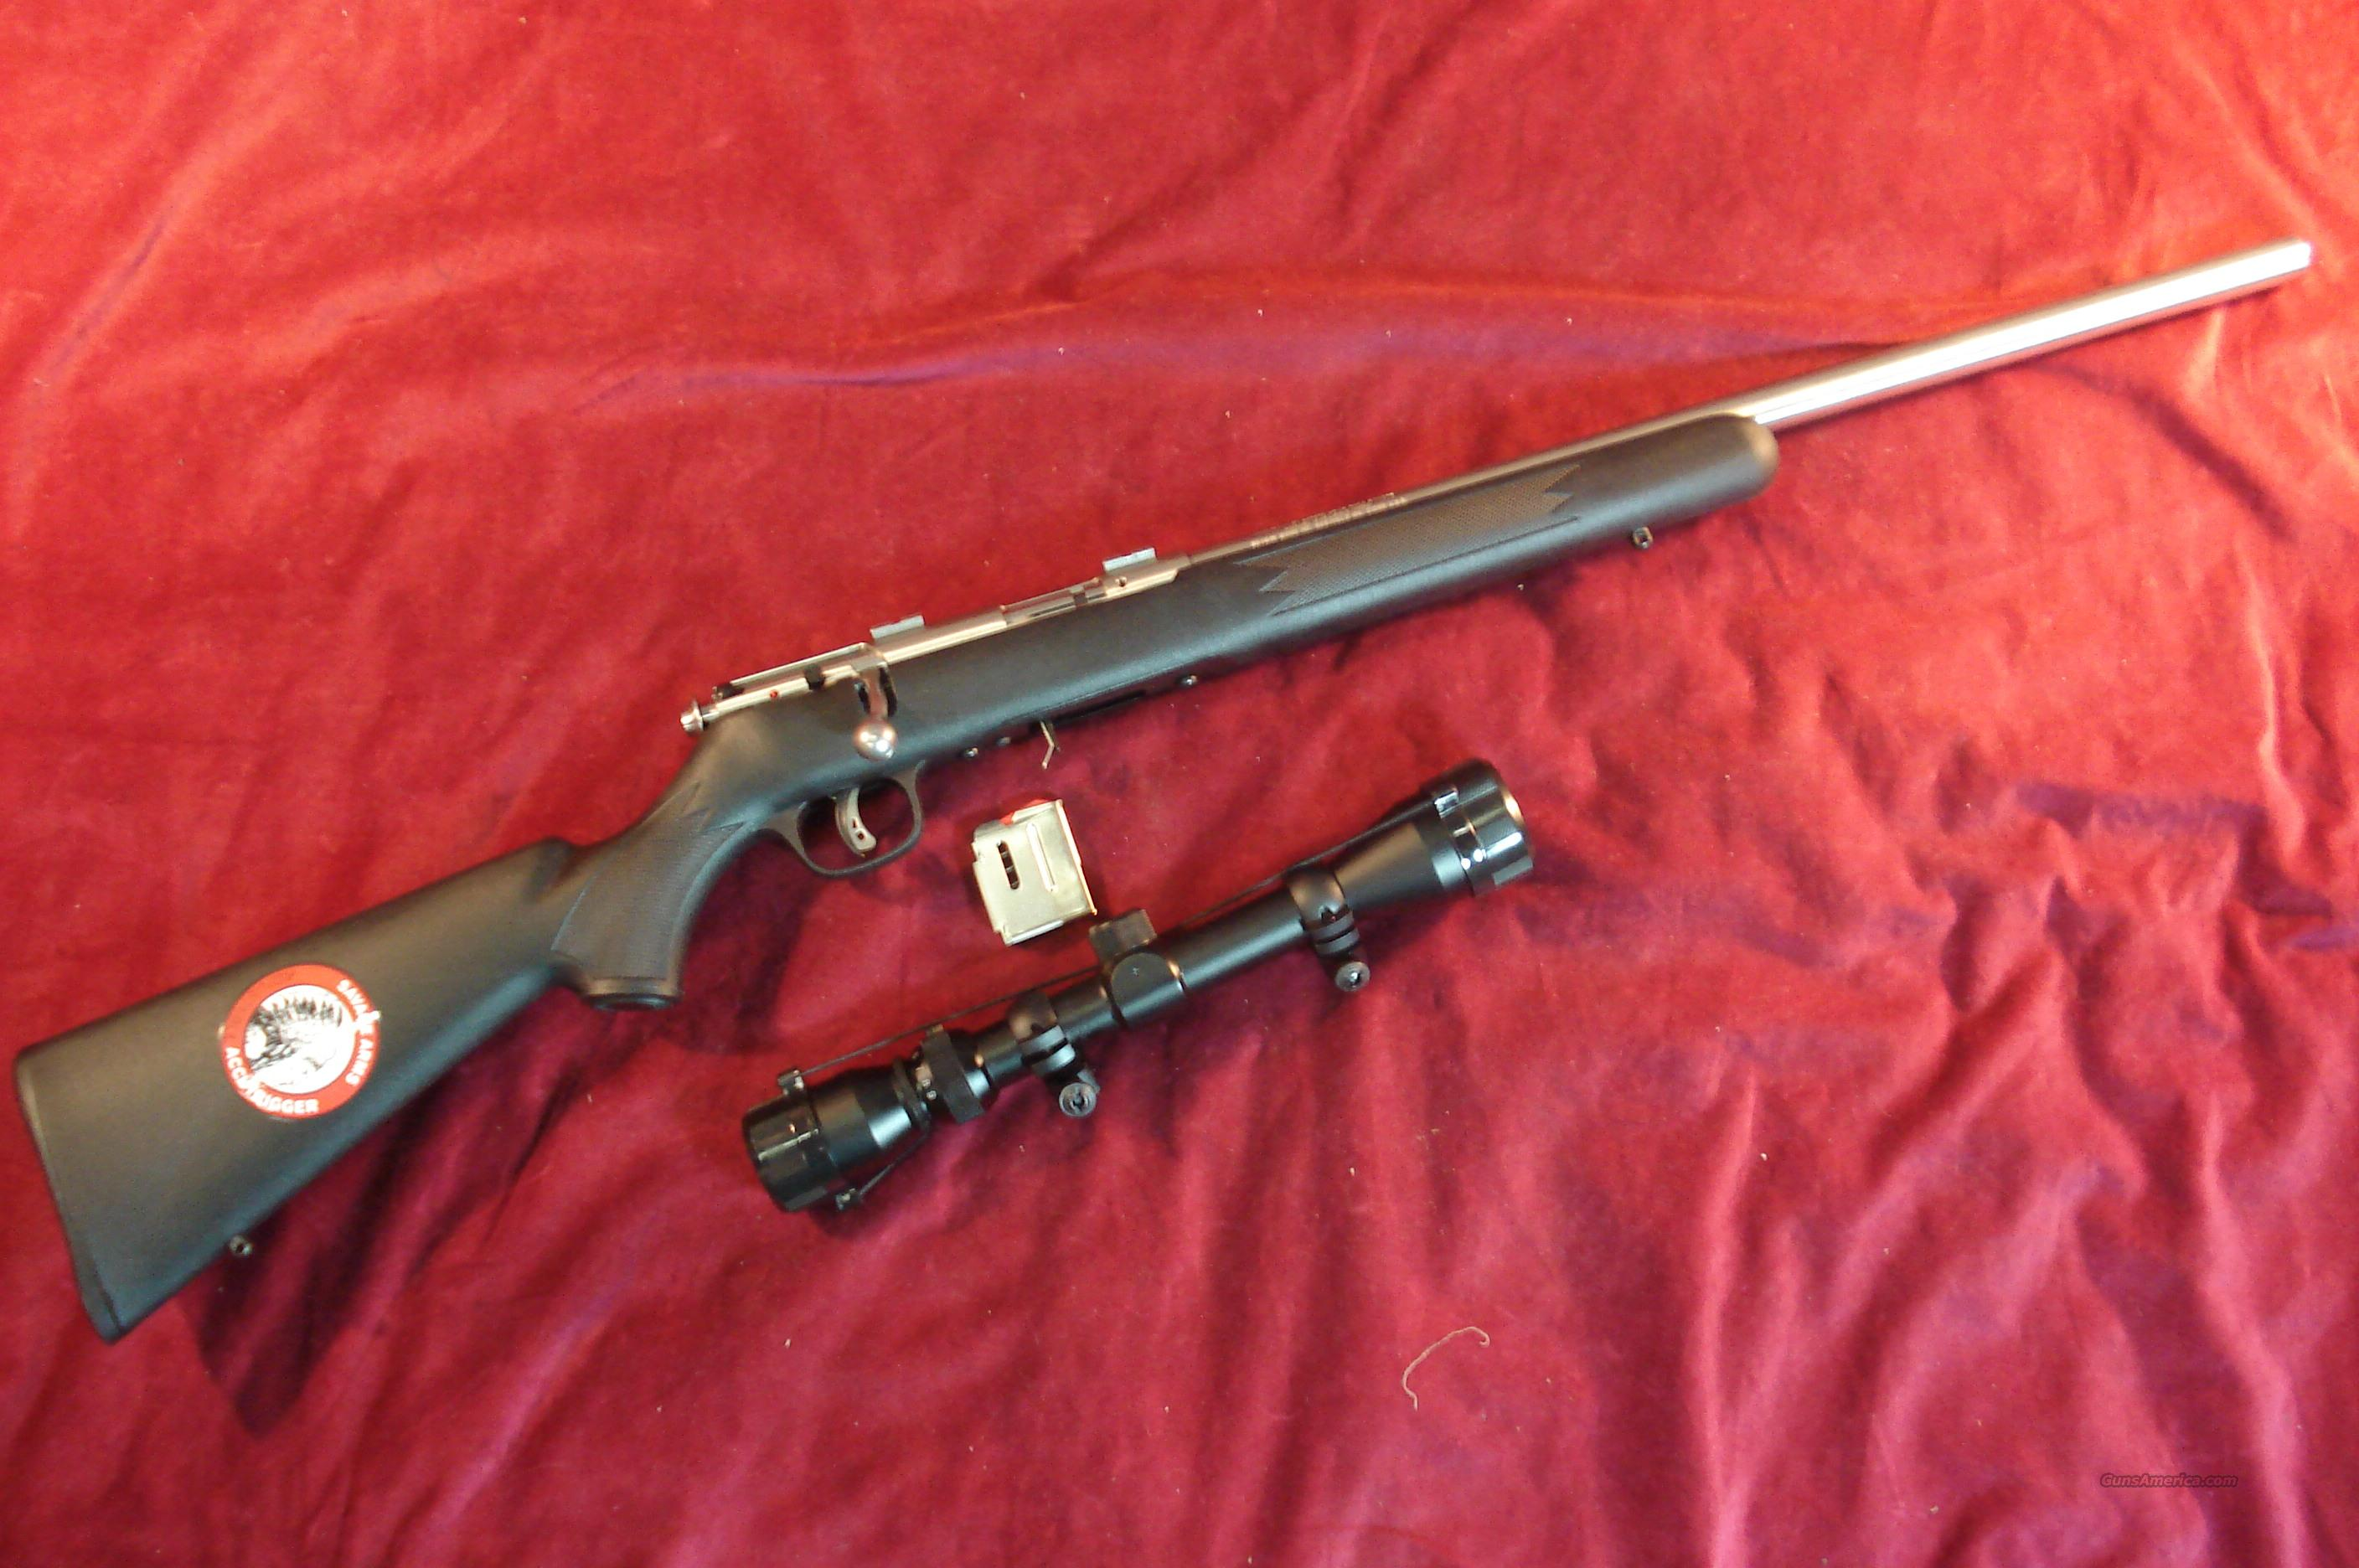 SAVAGE 93R17 STAINLESS SYNTHETIC 17HMR CAL W/ 3X9 SCOPE NEW  Guns > Rifles > Savage Rifles > Accutrigger Models > Sporting